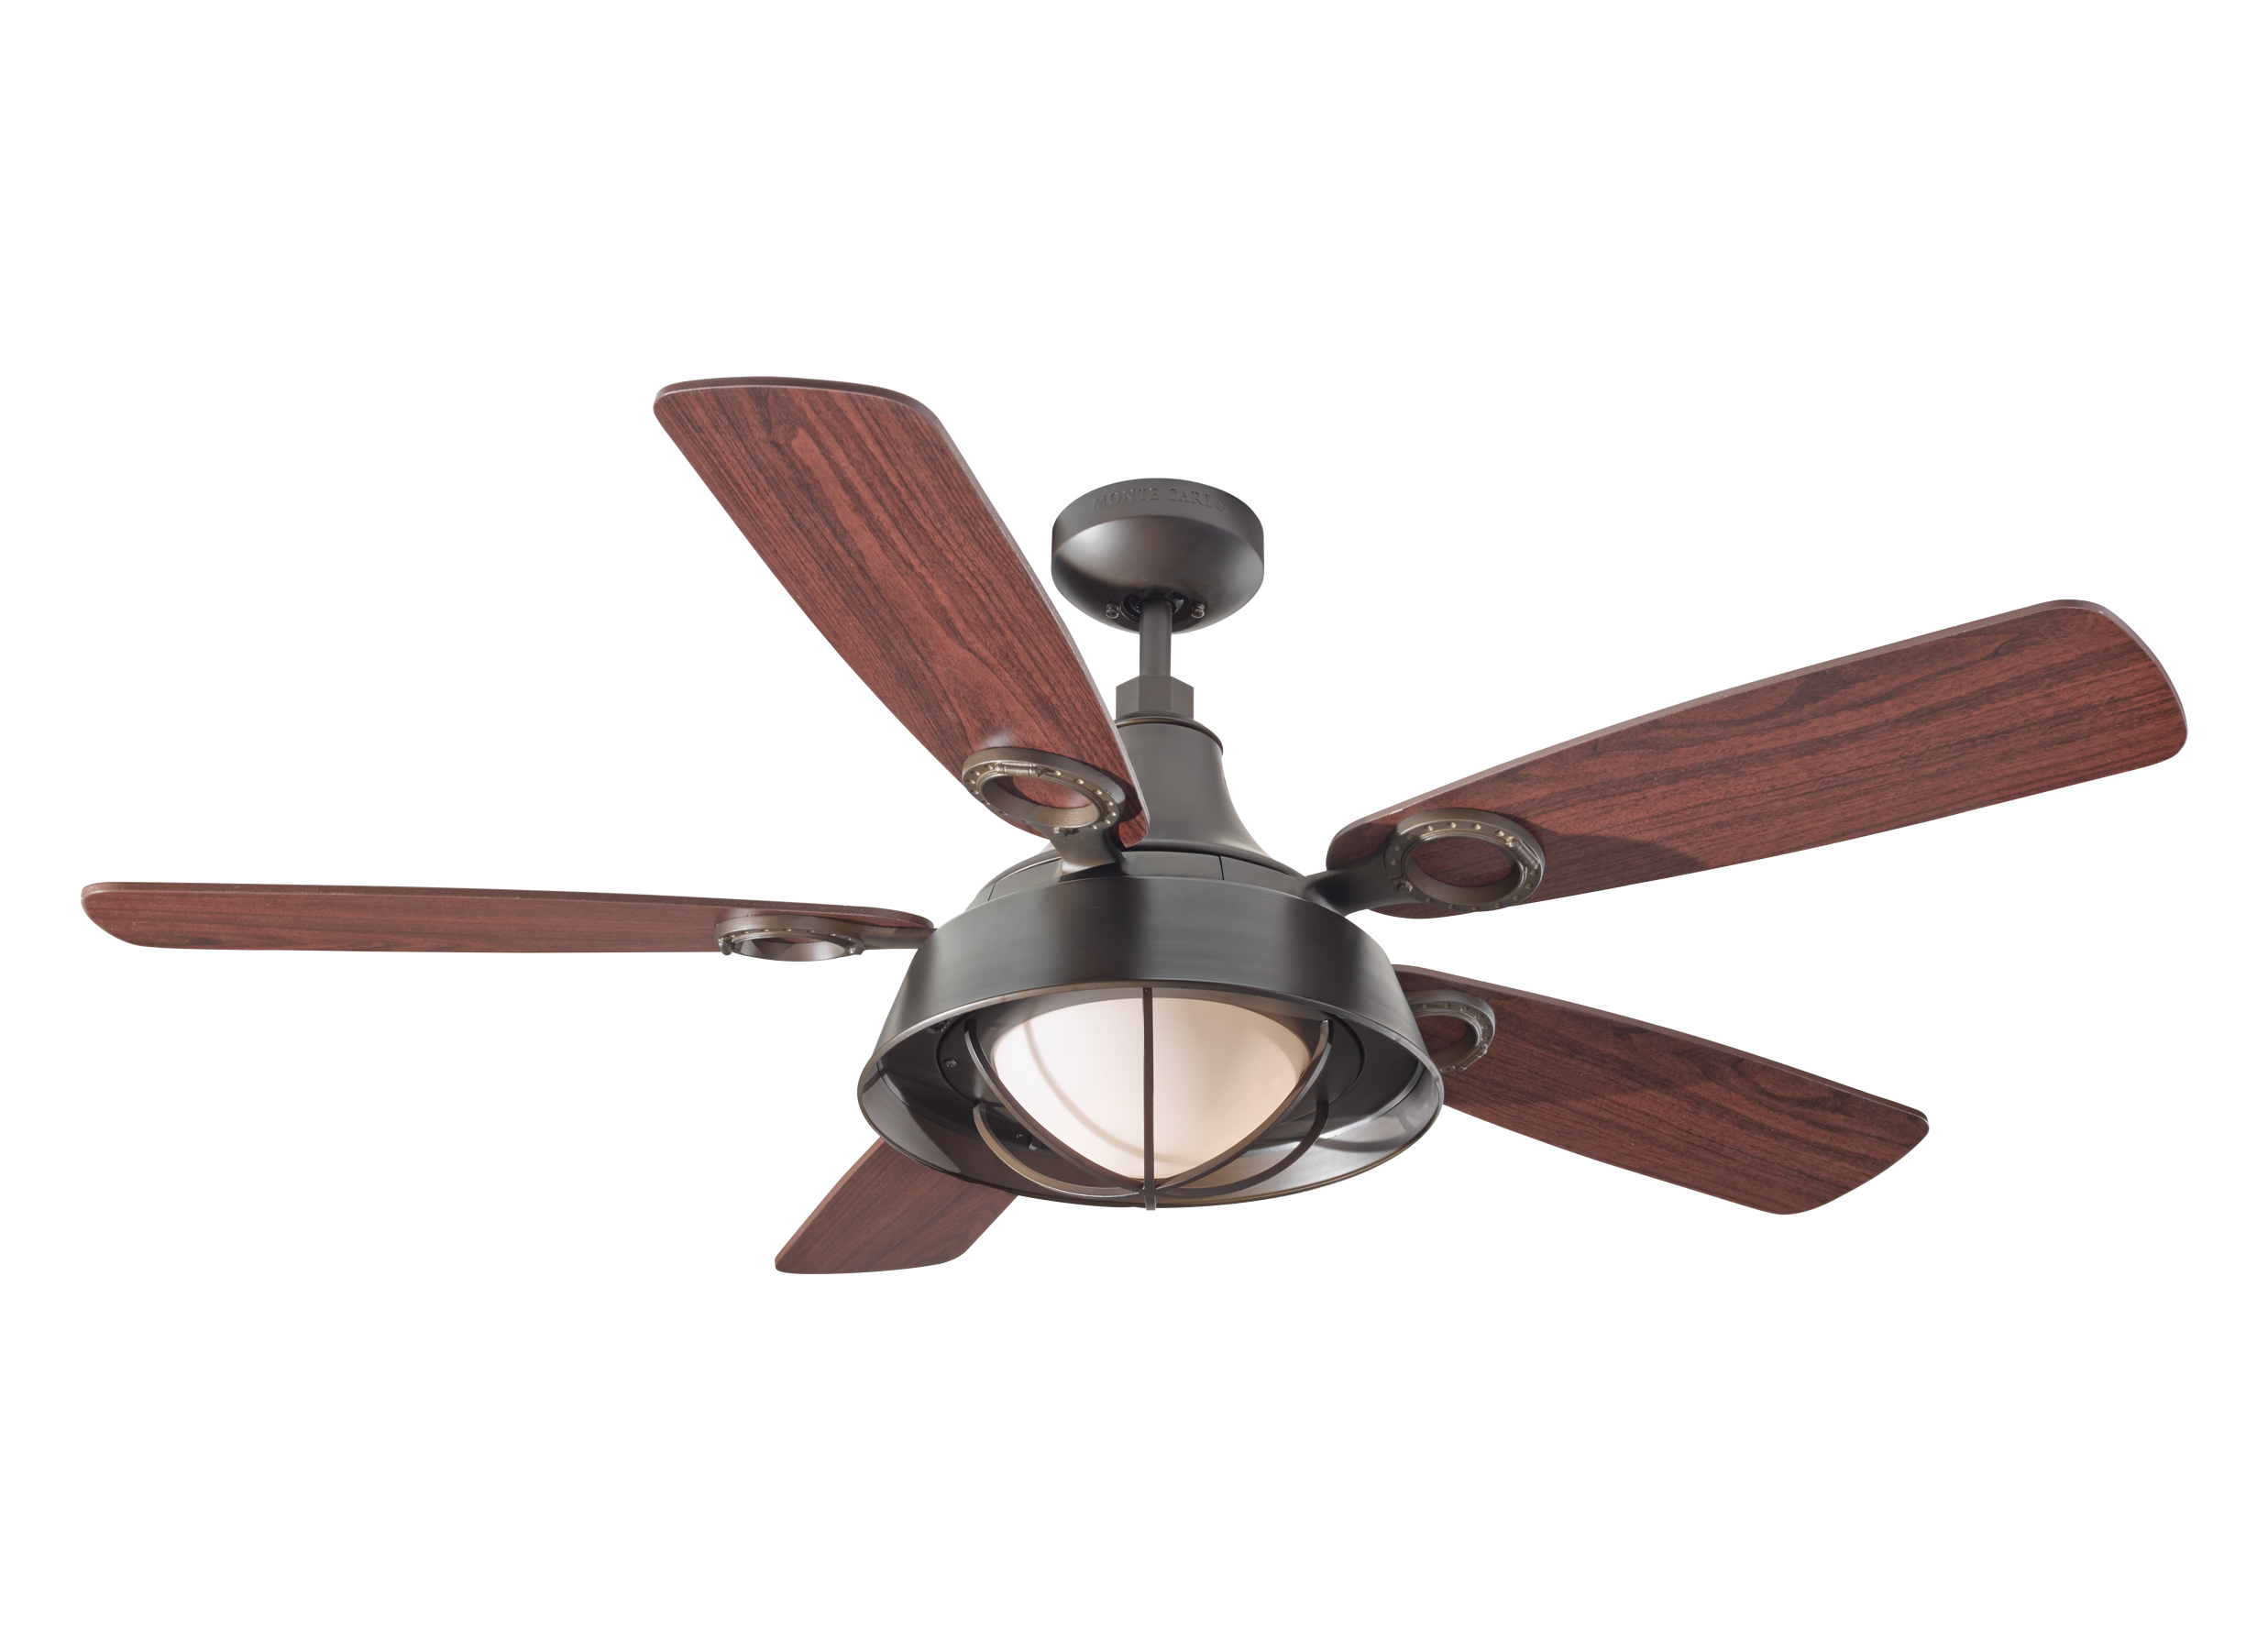 Wildlife Ceiling Fan Fans With Lighting Style Fy Lights 15 Loading Zoom 5mb52ozd 52 Morton Oil Rubbed Bronze